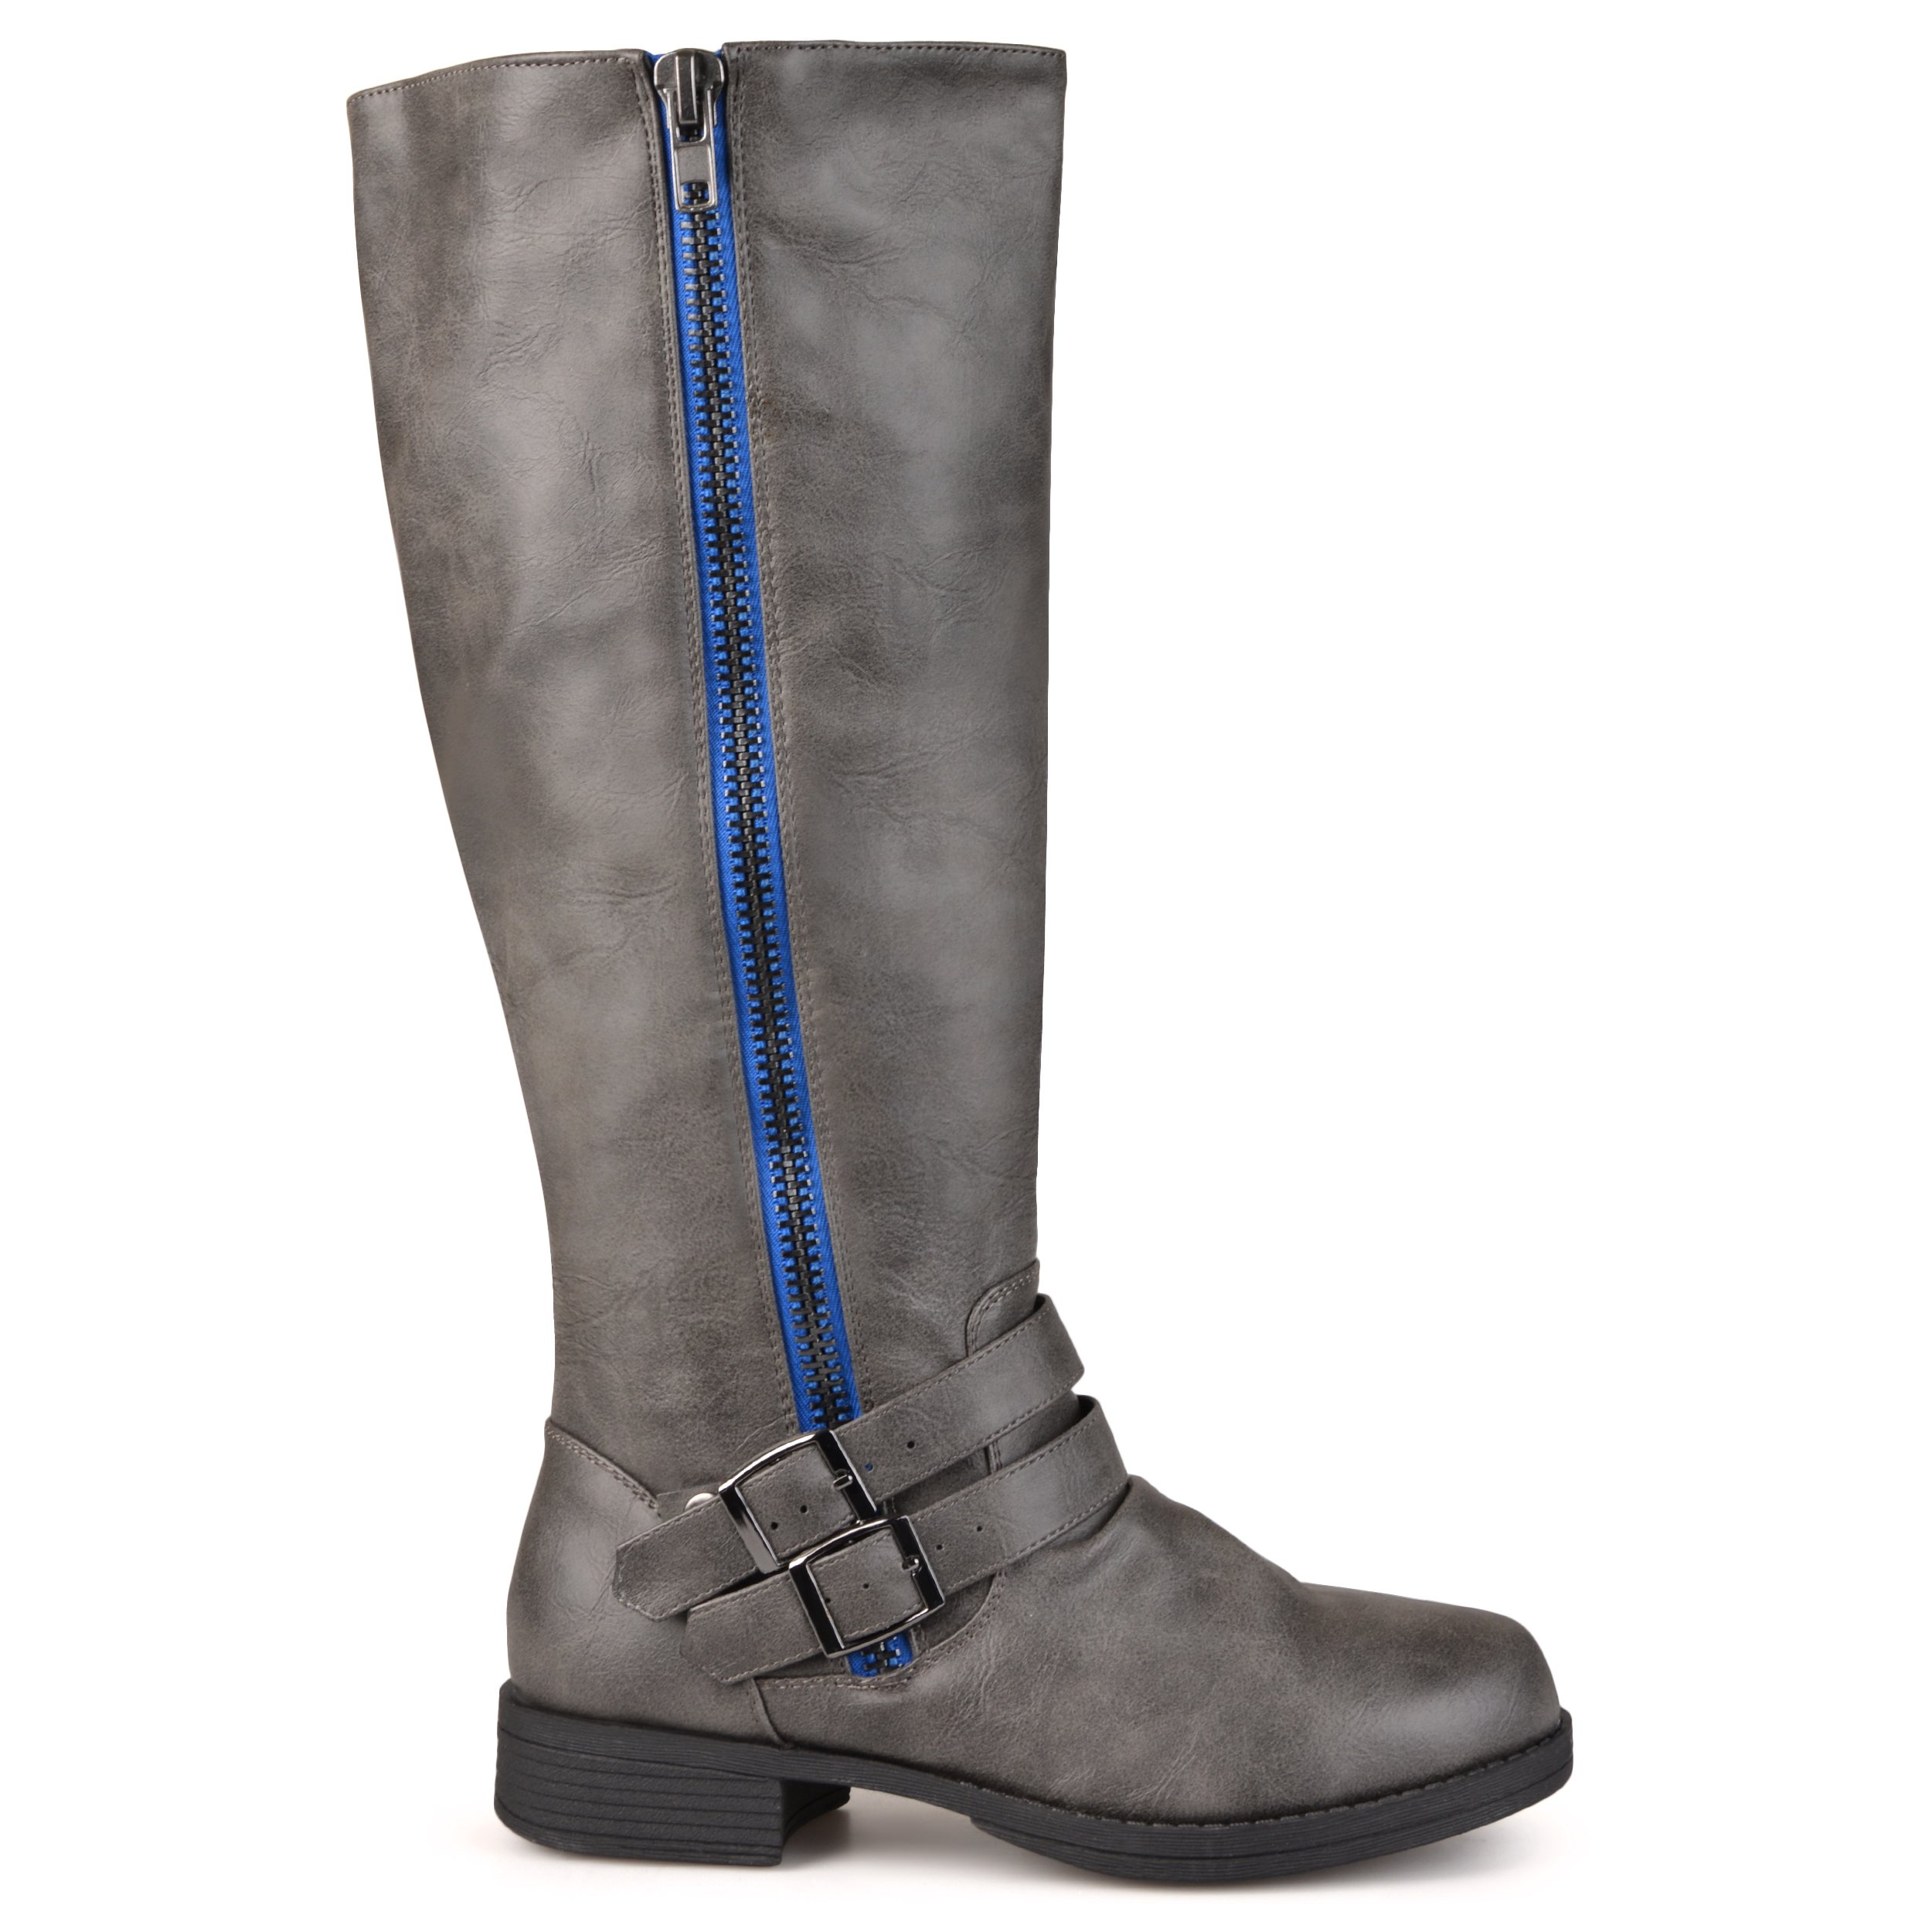 Brinley Co Women's Fulton Knee High Boot, Grey, 10 Wide/Wide Shaft US by Brinley Co